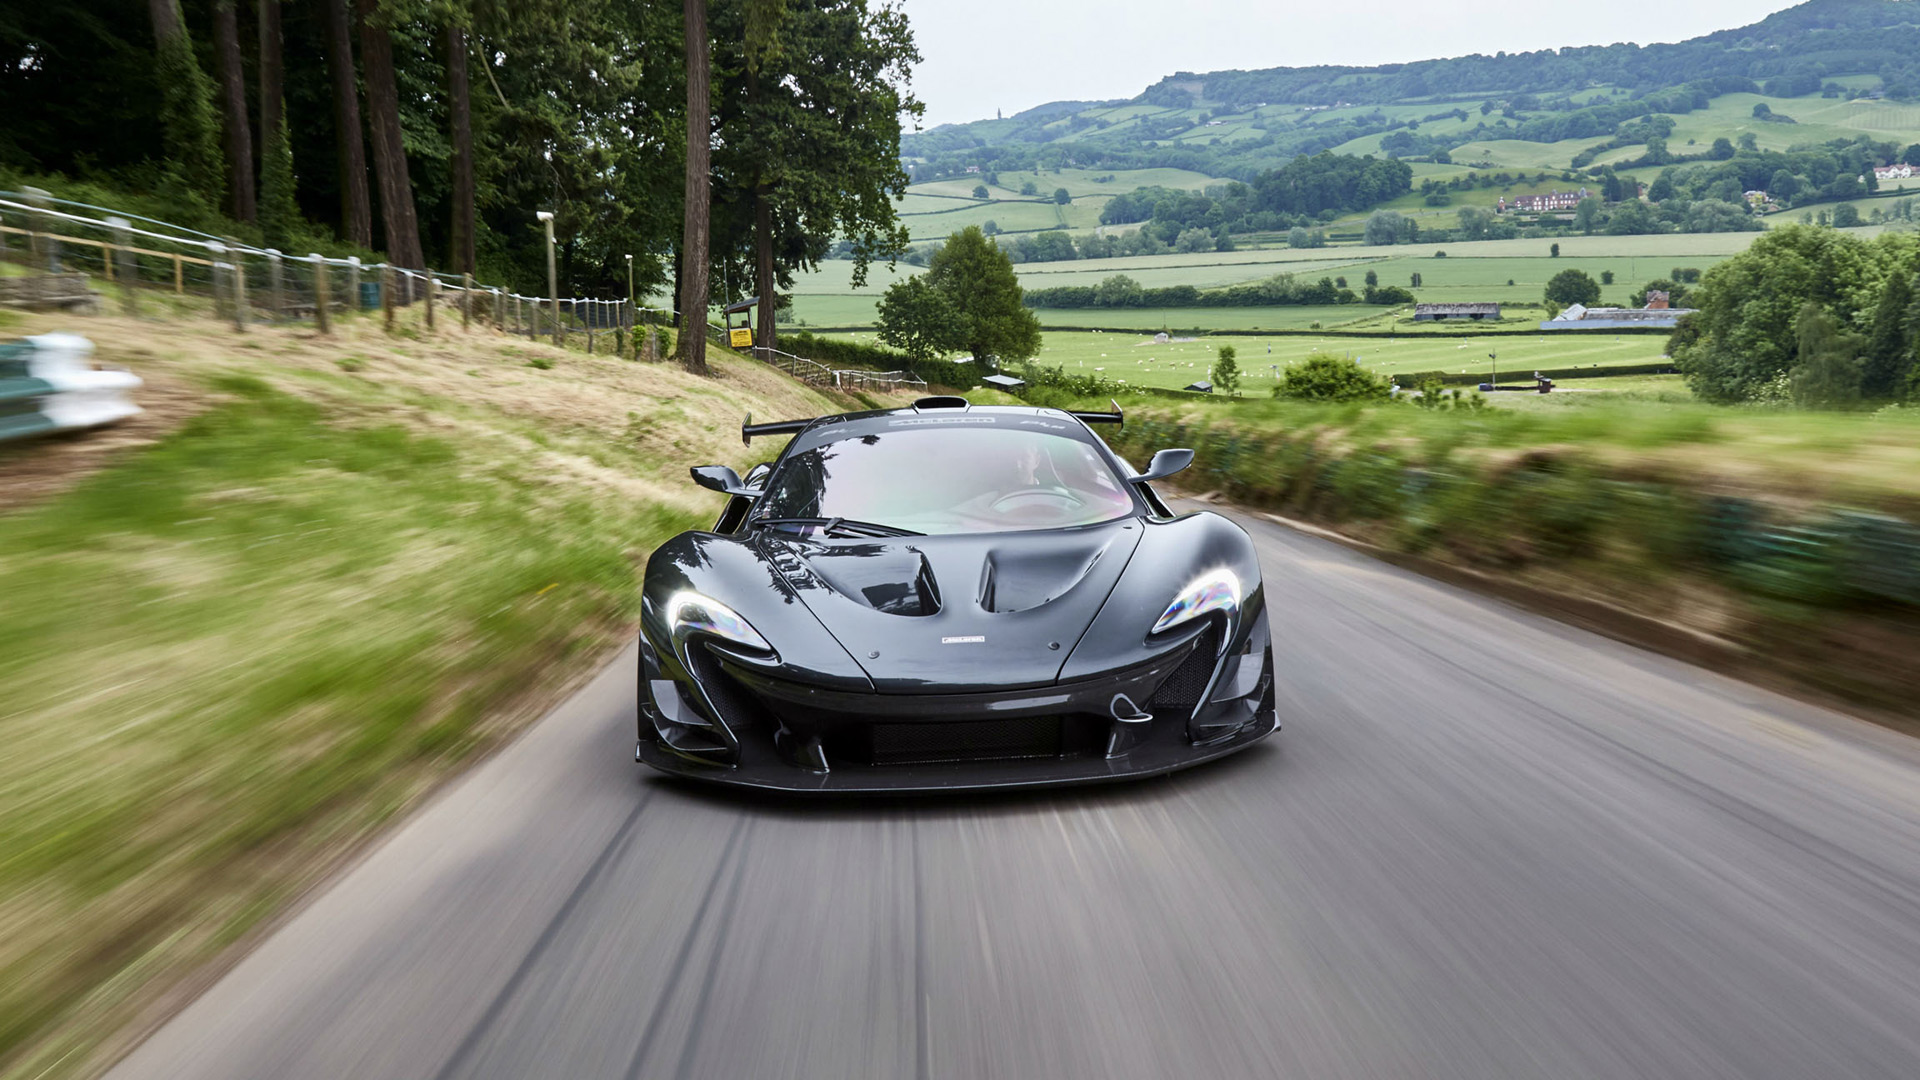 986-horsepower McLaren P1 LM takes on Pikes Peak